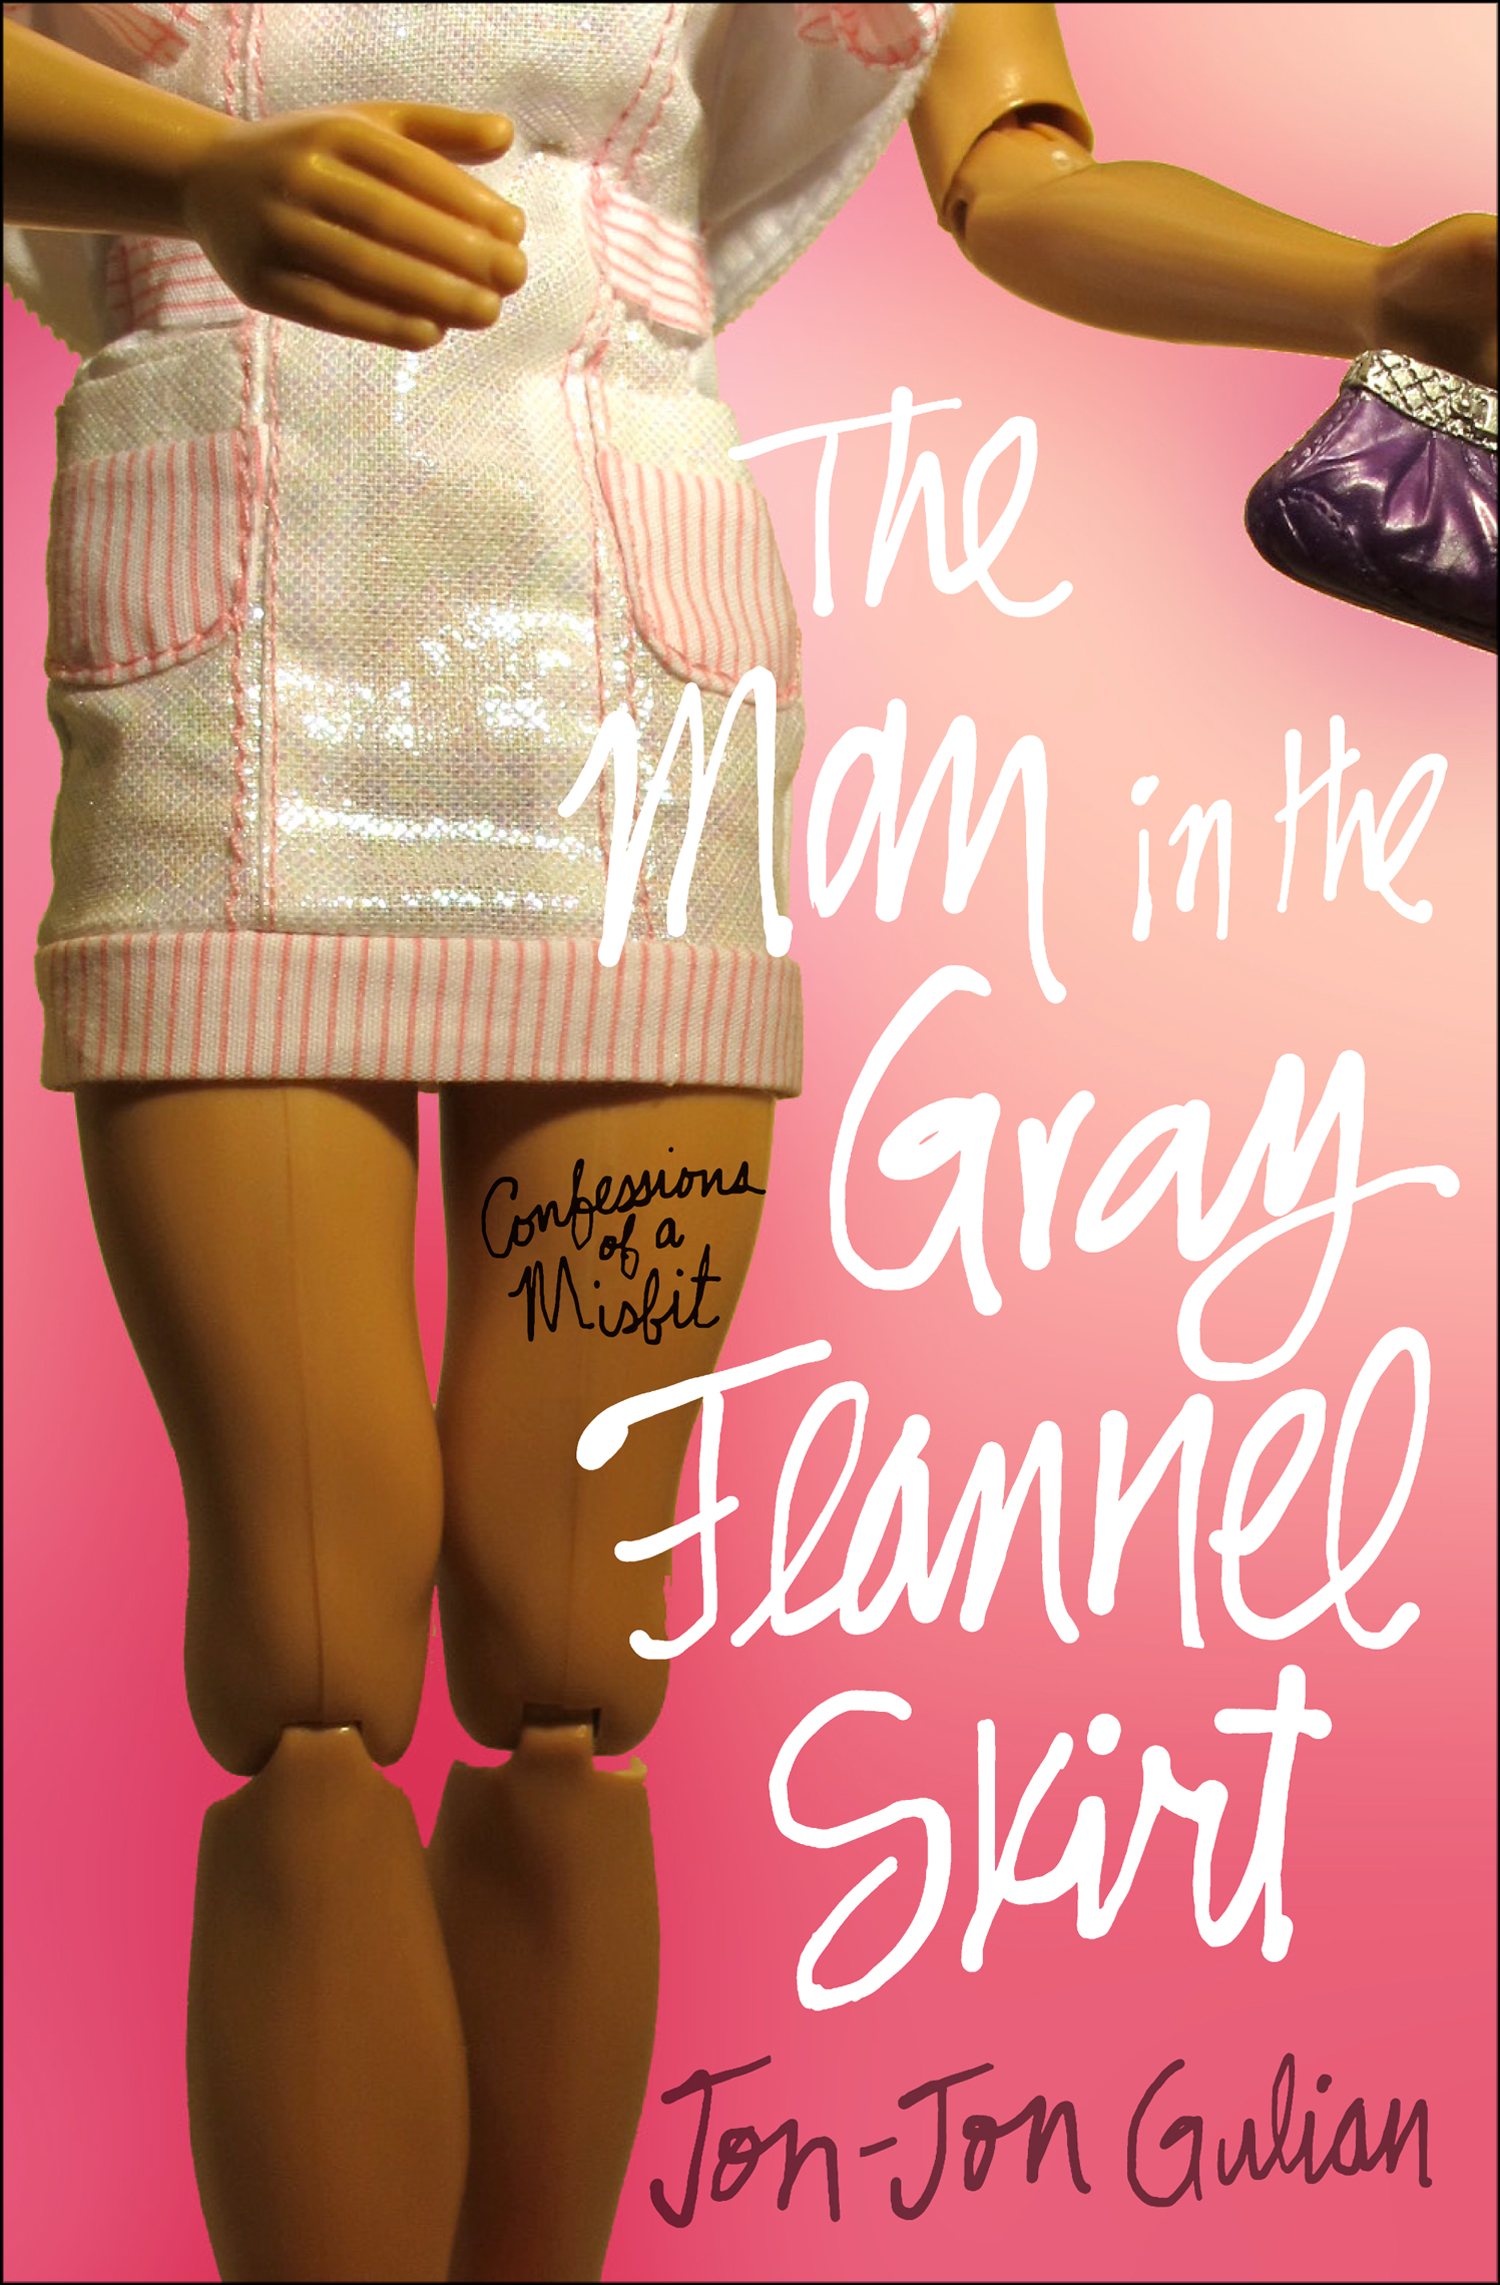 THE-MAN-IN-GRAY-FLANNEL-SKIRT-comp3-ss6.jpg